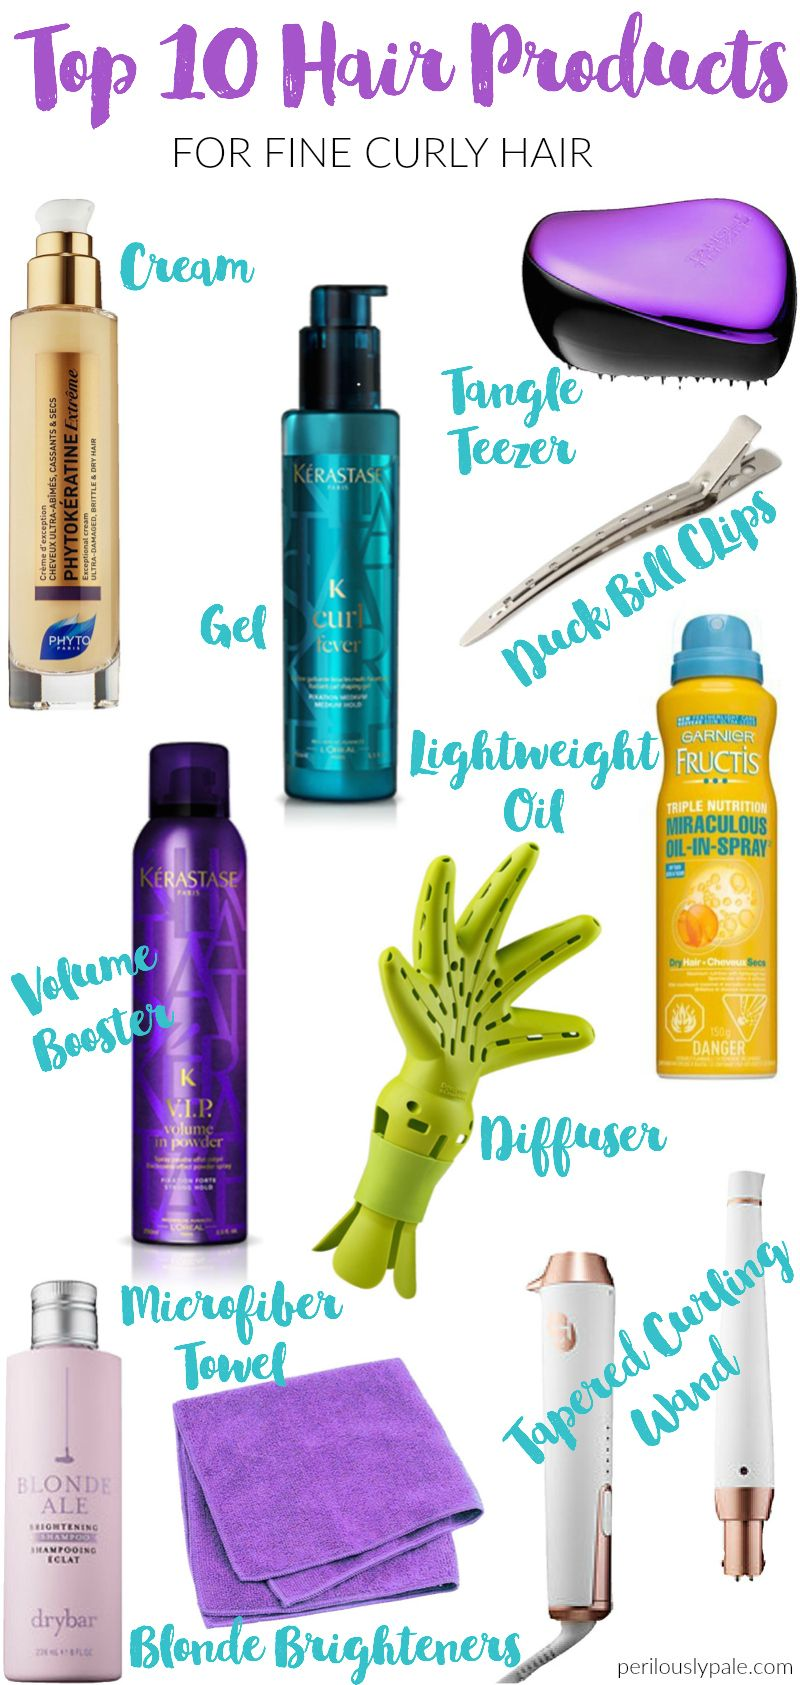 Top 10 Hair Products for Fine, Curly Hair Fine curly